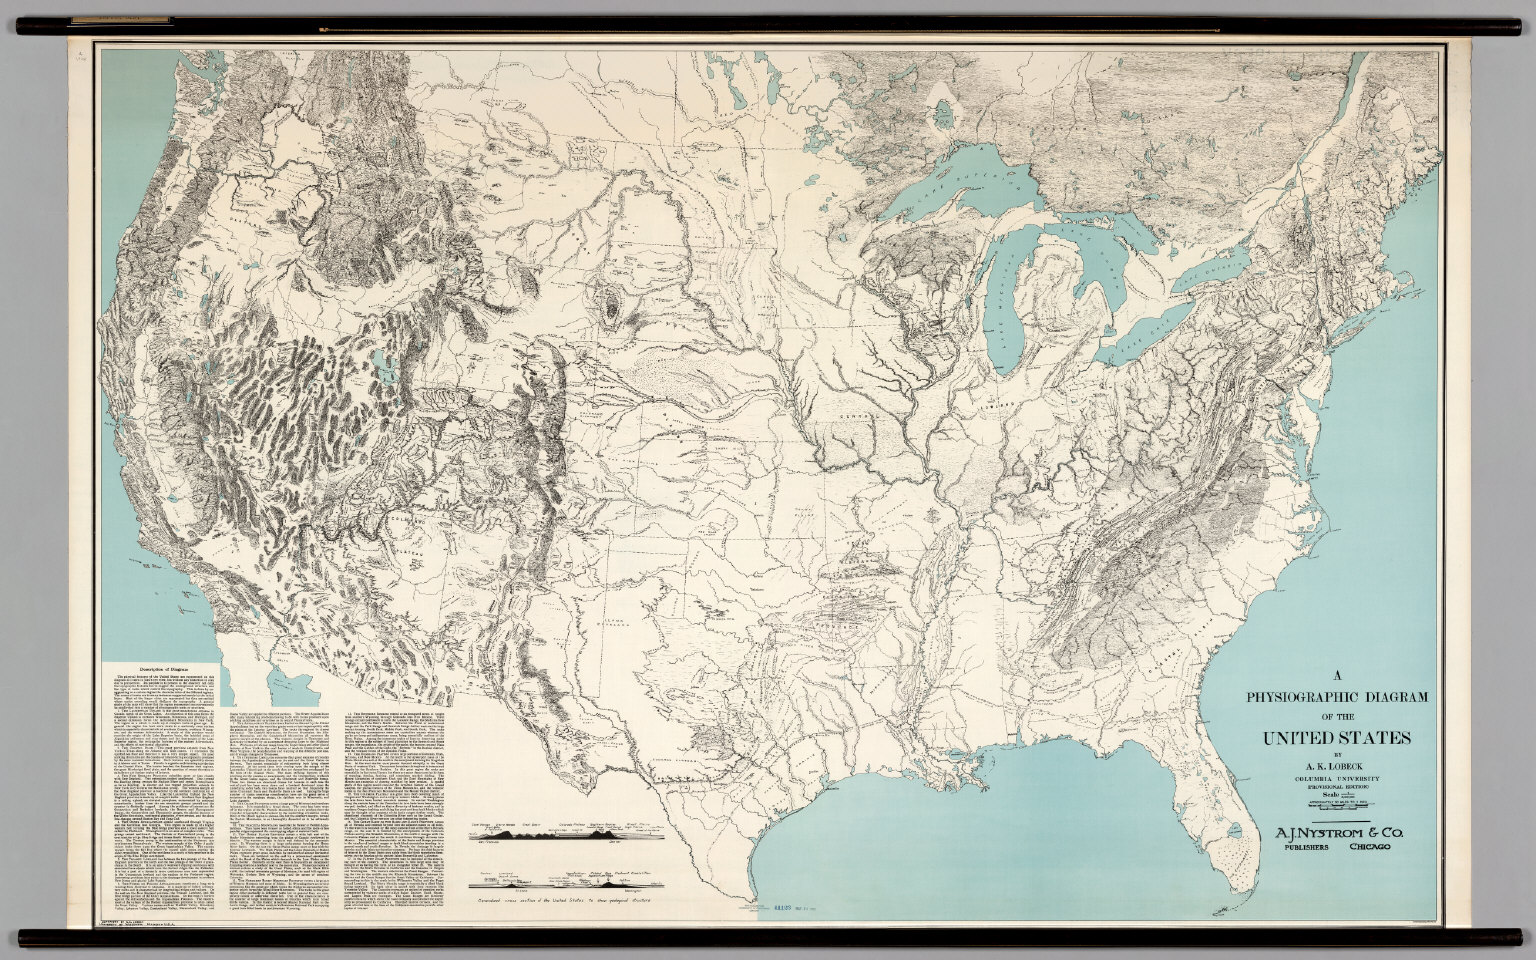 United States -- Physiographic Diagram (Lobeck) - David Rumsey ...